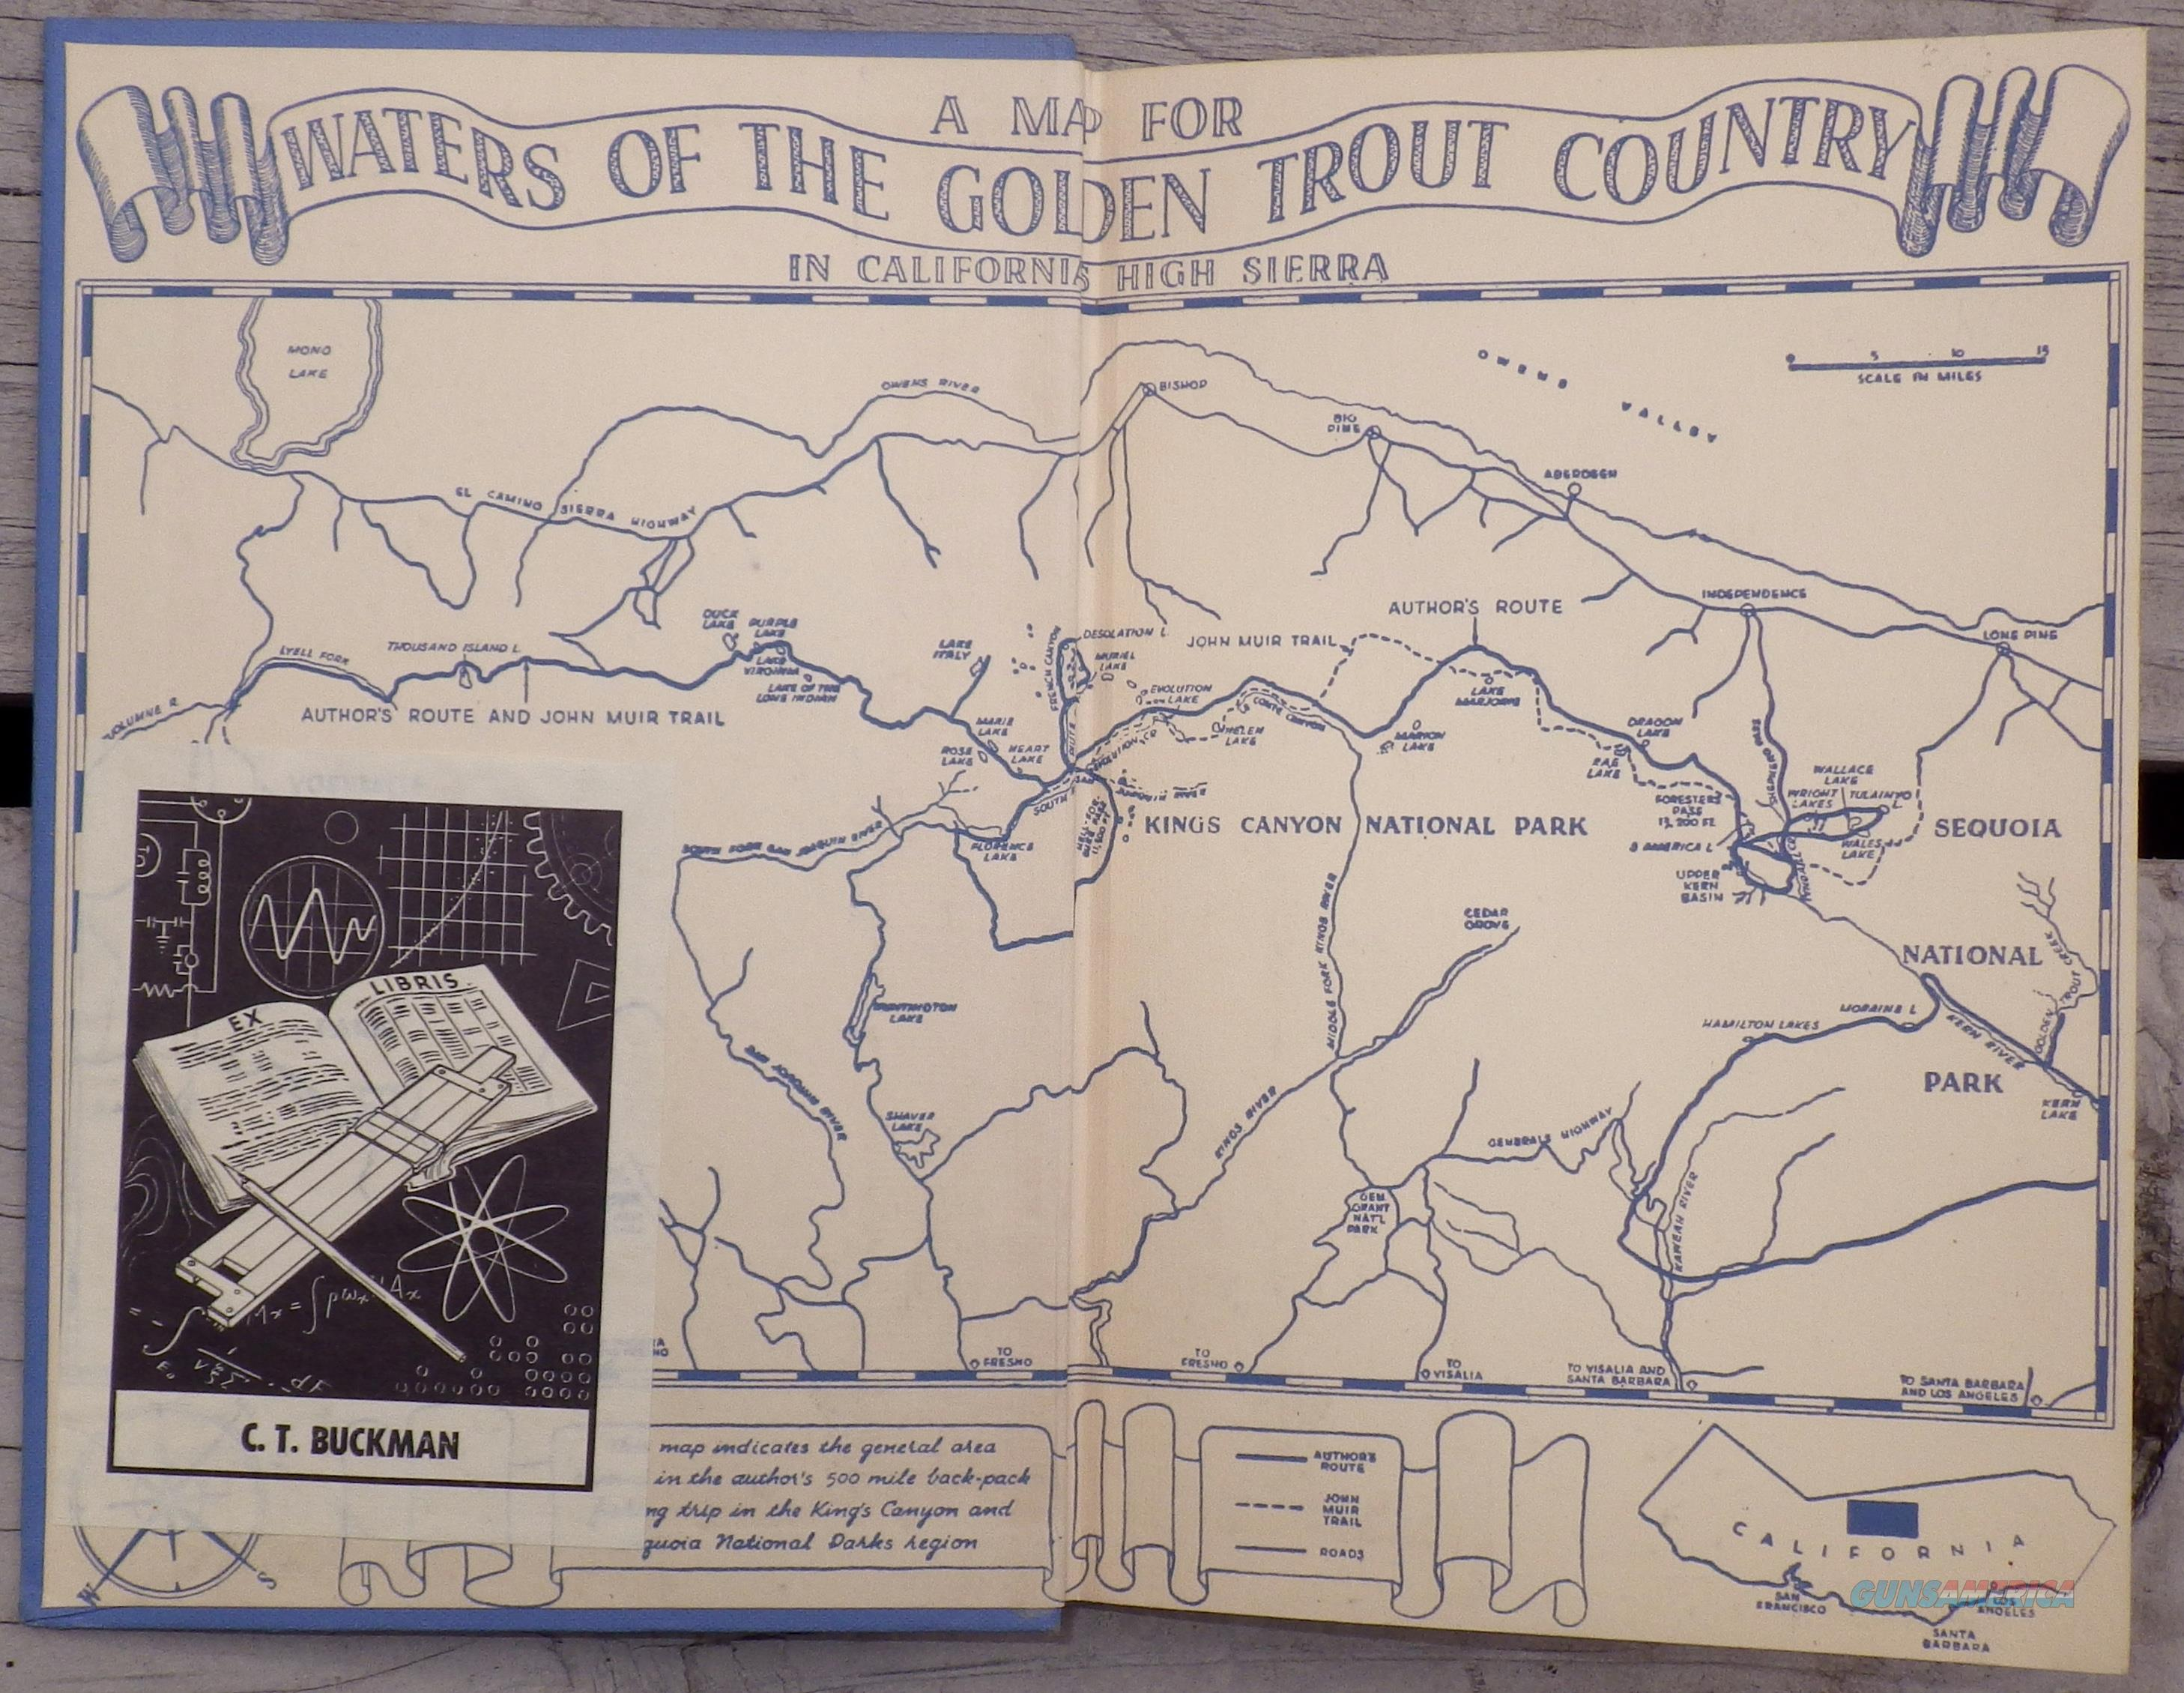 Waters of the Golden Trout Country, Charles McDermand  Non-Guns > Books & Magazines